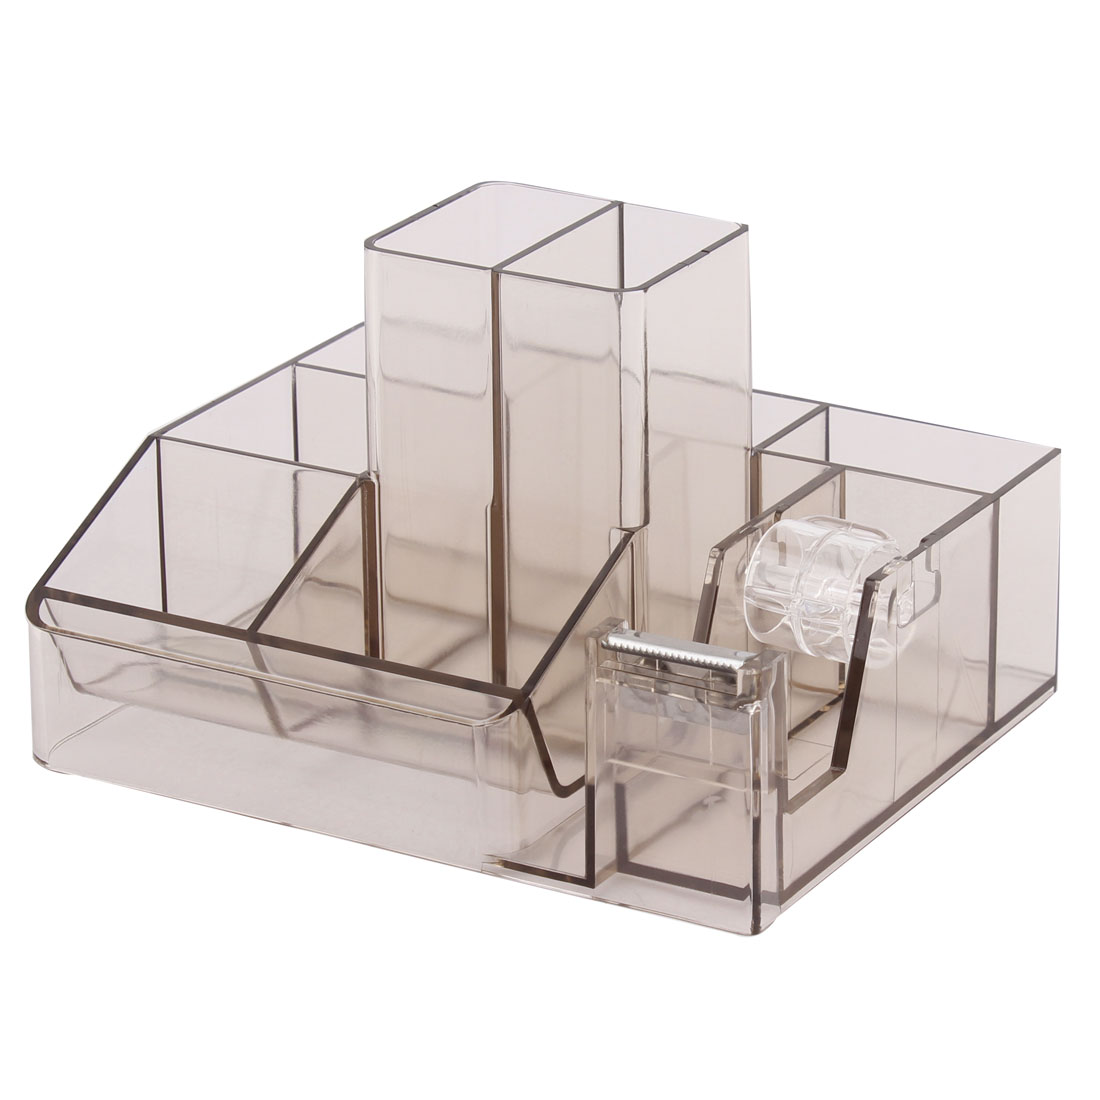 Office Plastic 7 Compartments One Tape Roller Pencil Pen Holder Clear Brown